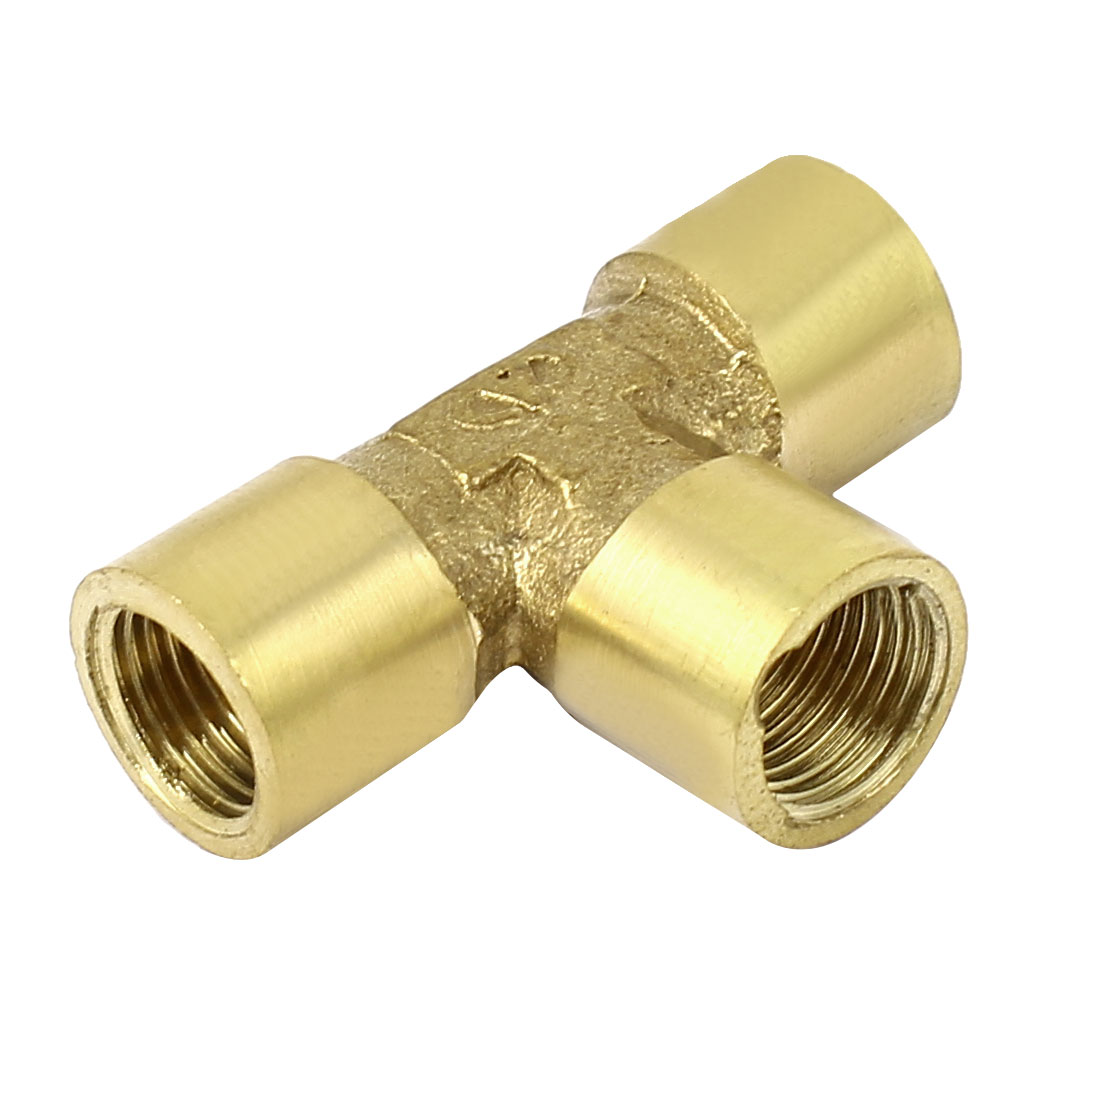 1/8 BSP Female Thread T Shaped Water Fuel Hose Pipe Brass Connector Gold Tone